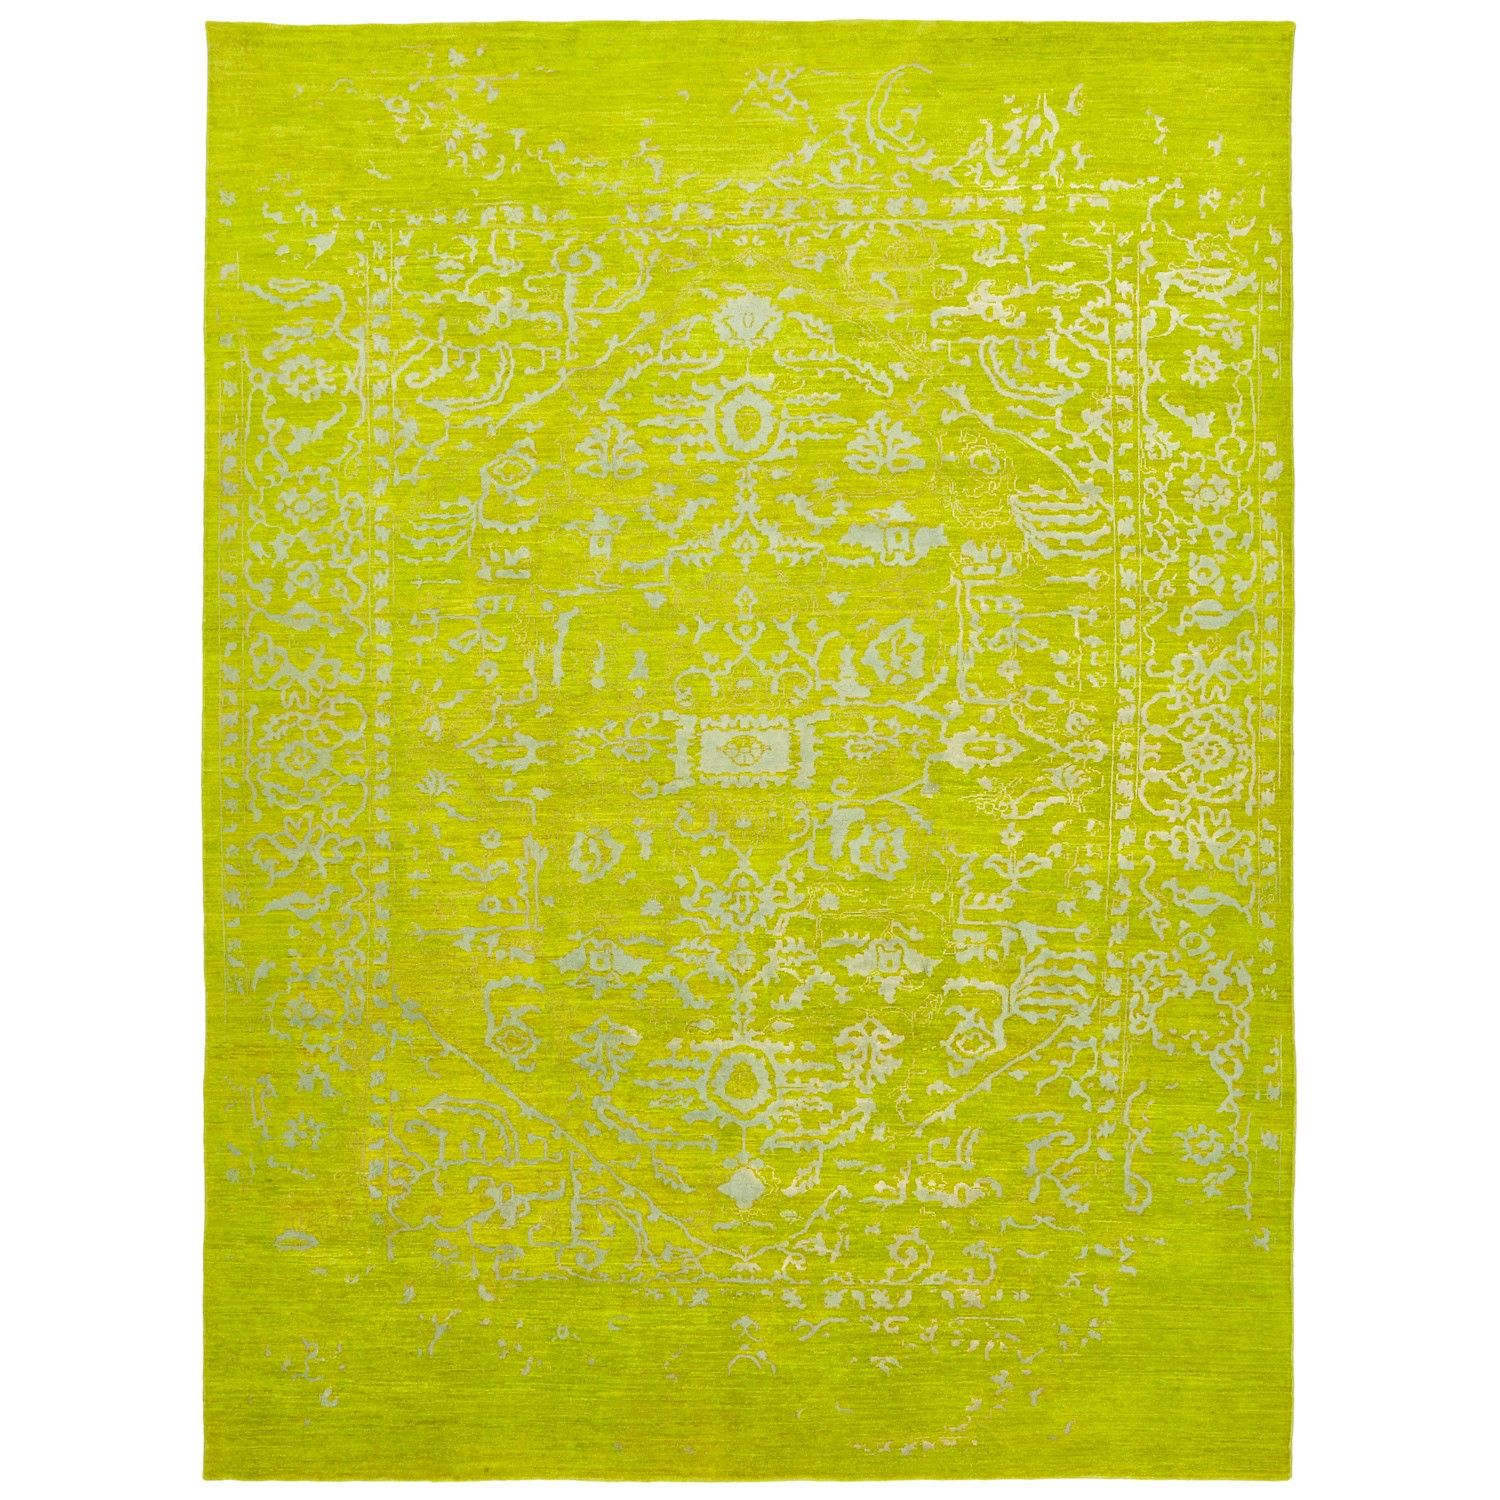 Traditional motifs are emphasized on the saturated chartreuse field